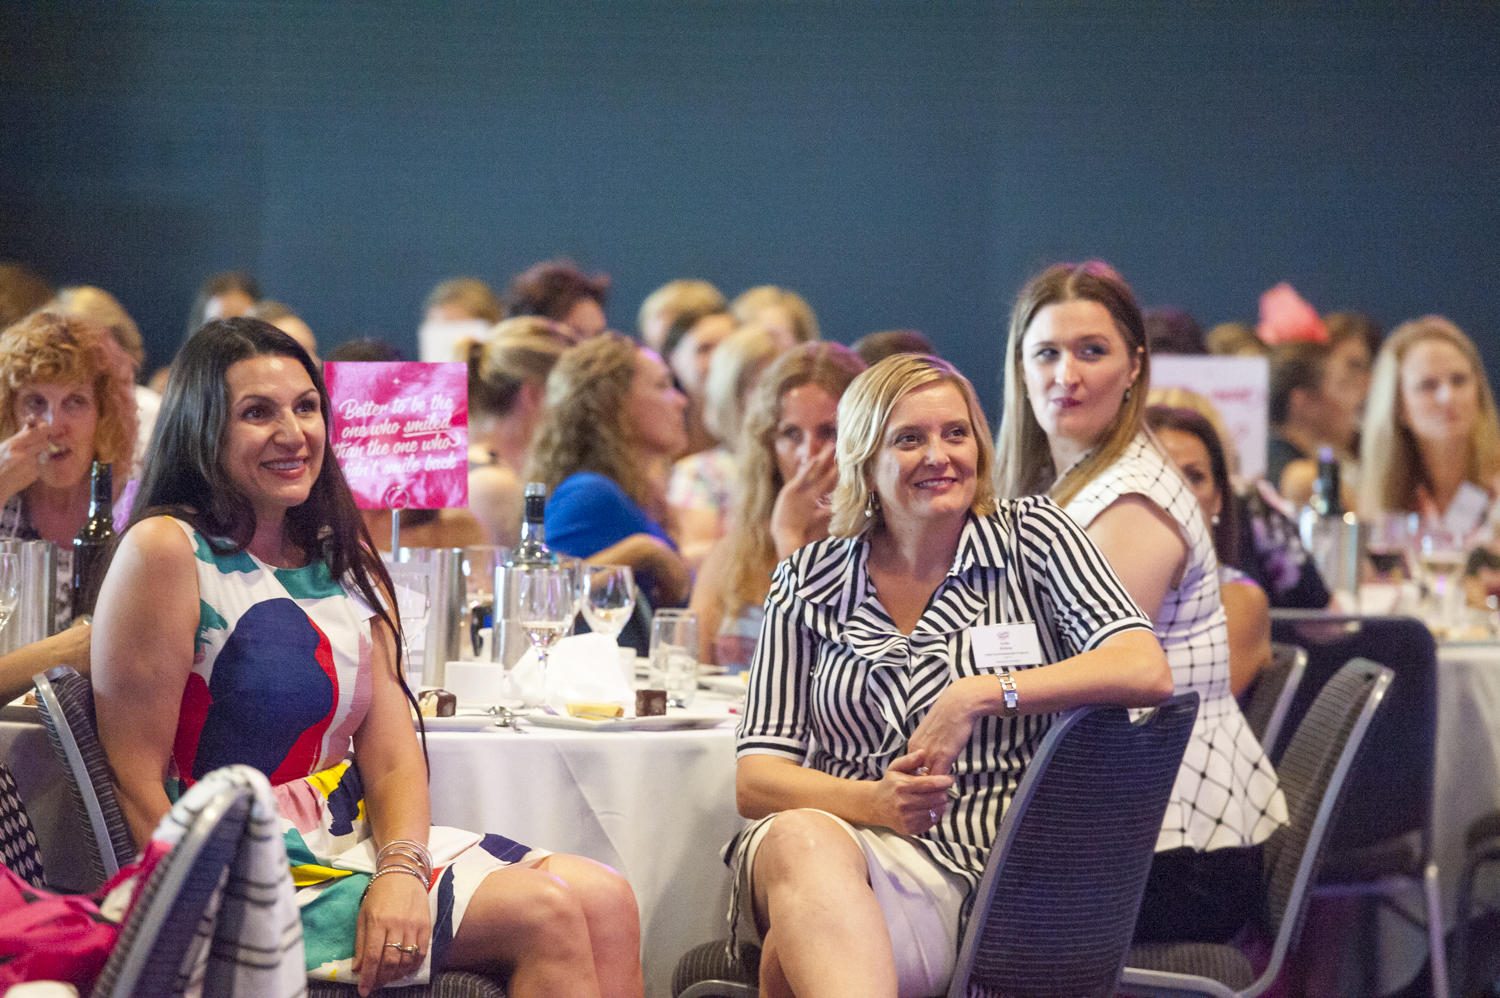 BusinessChicks130215-0542.jpg